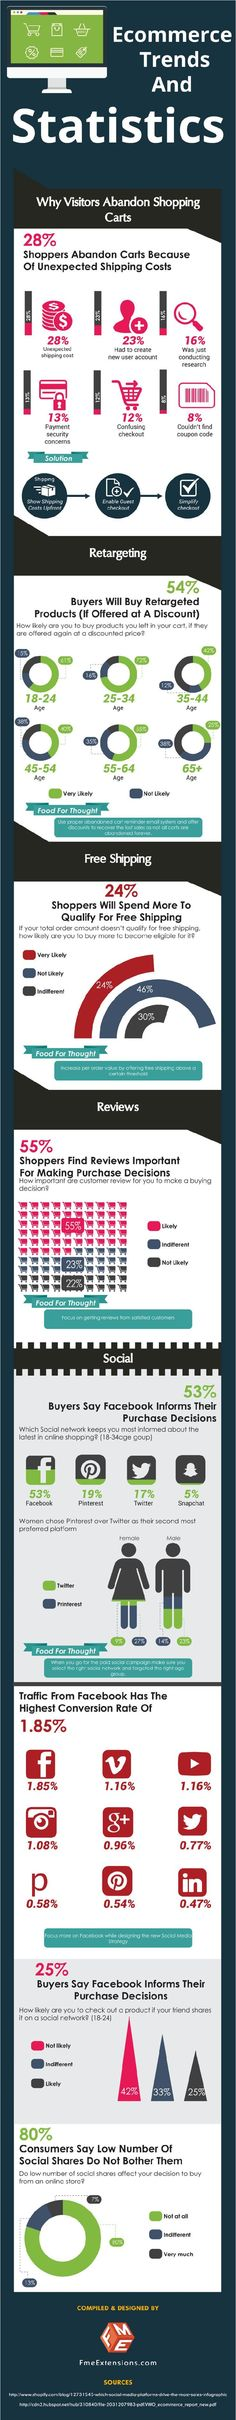 Need to Revise Your Online Marketing Strategy? These E-Commerce Trends and Statistics Can Help.